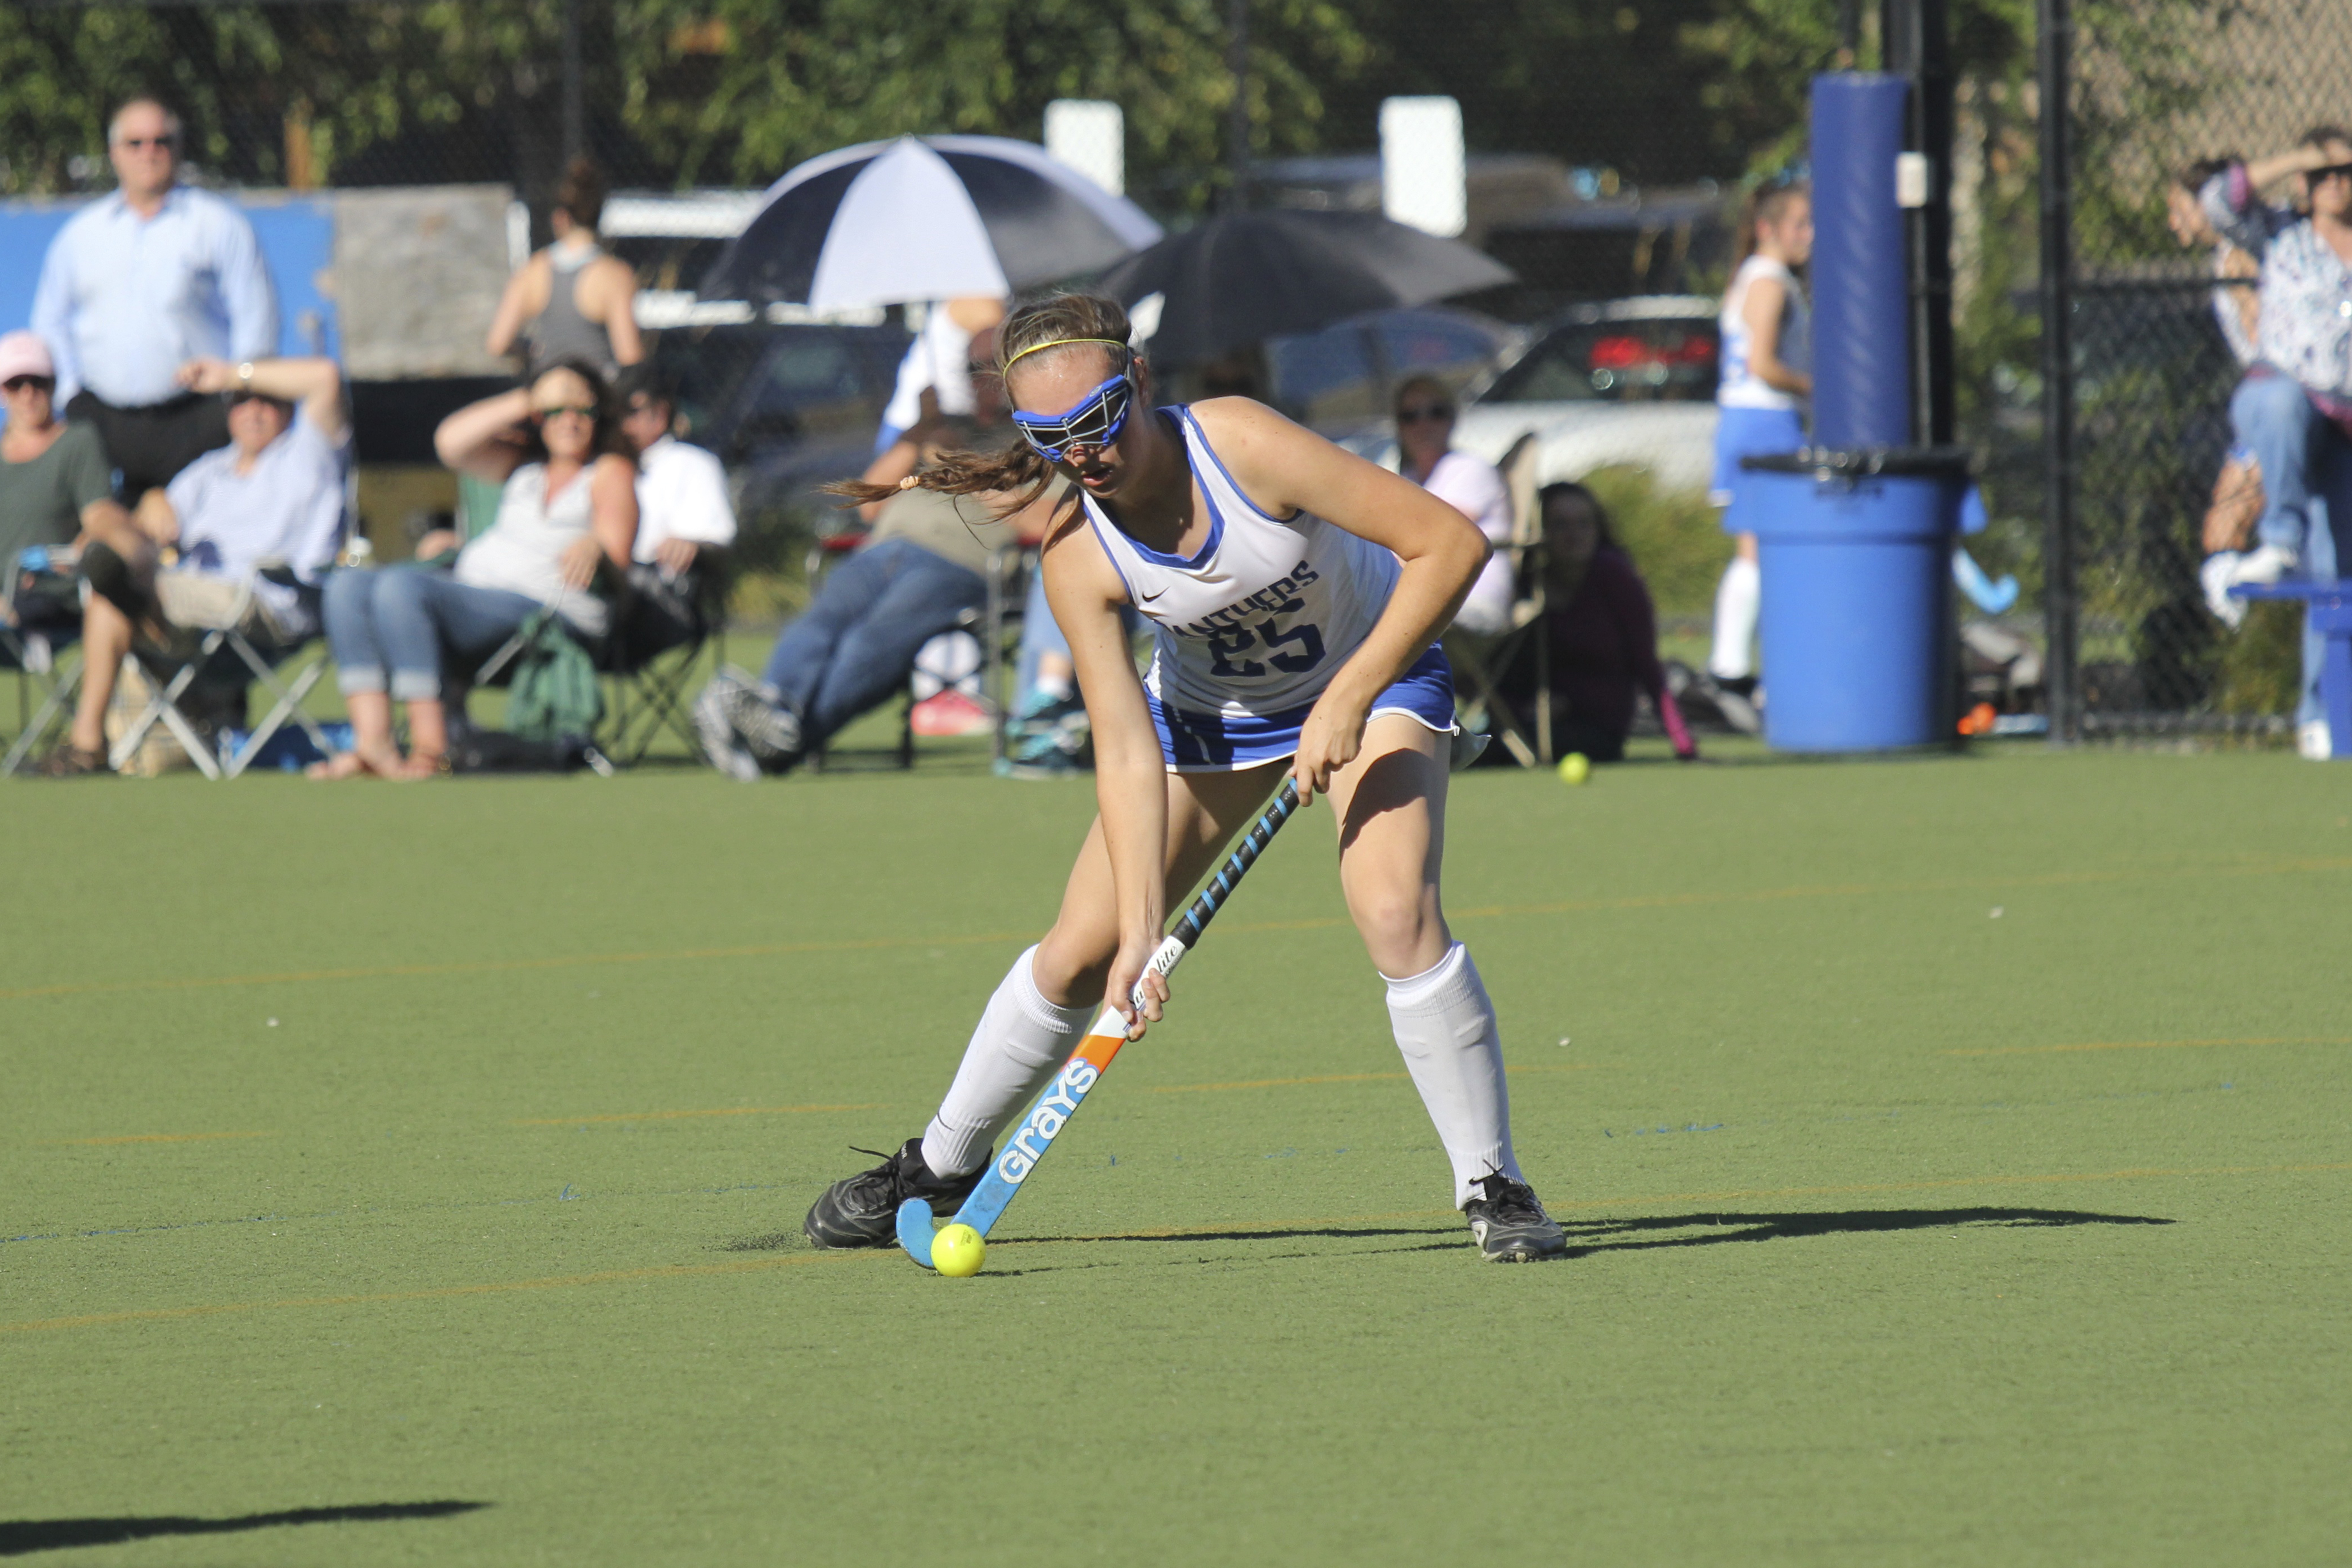 Student playing field hockey at Presentation